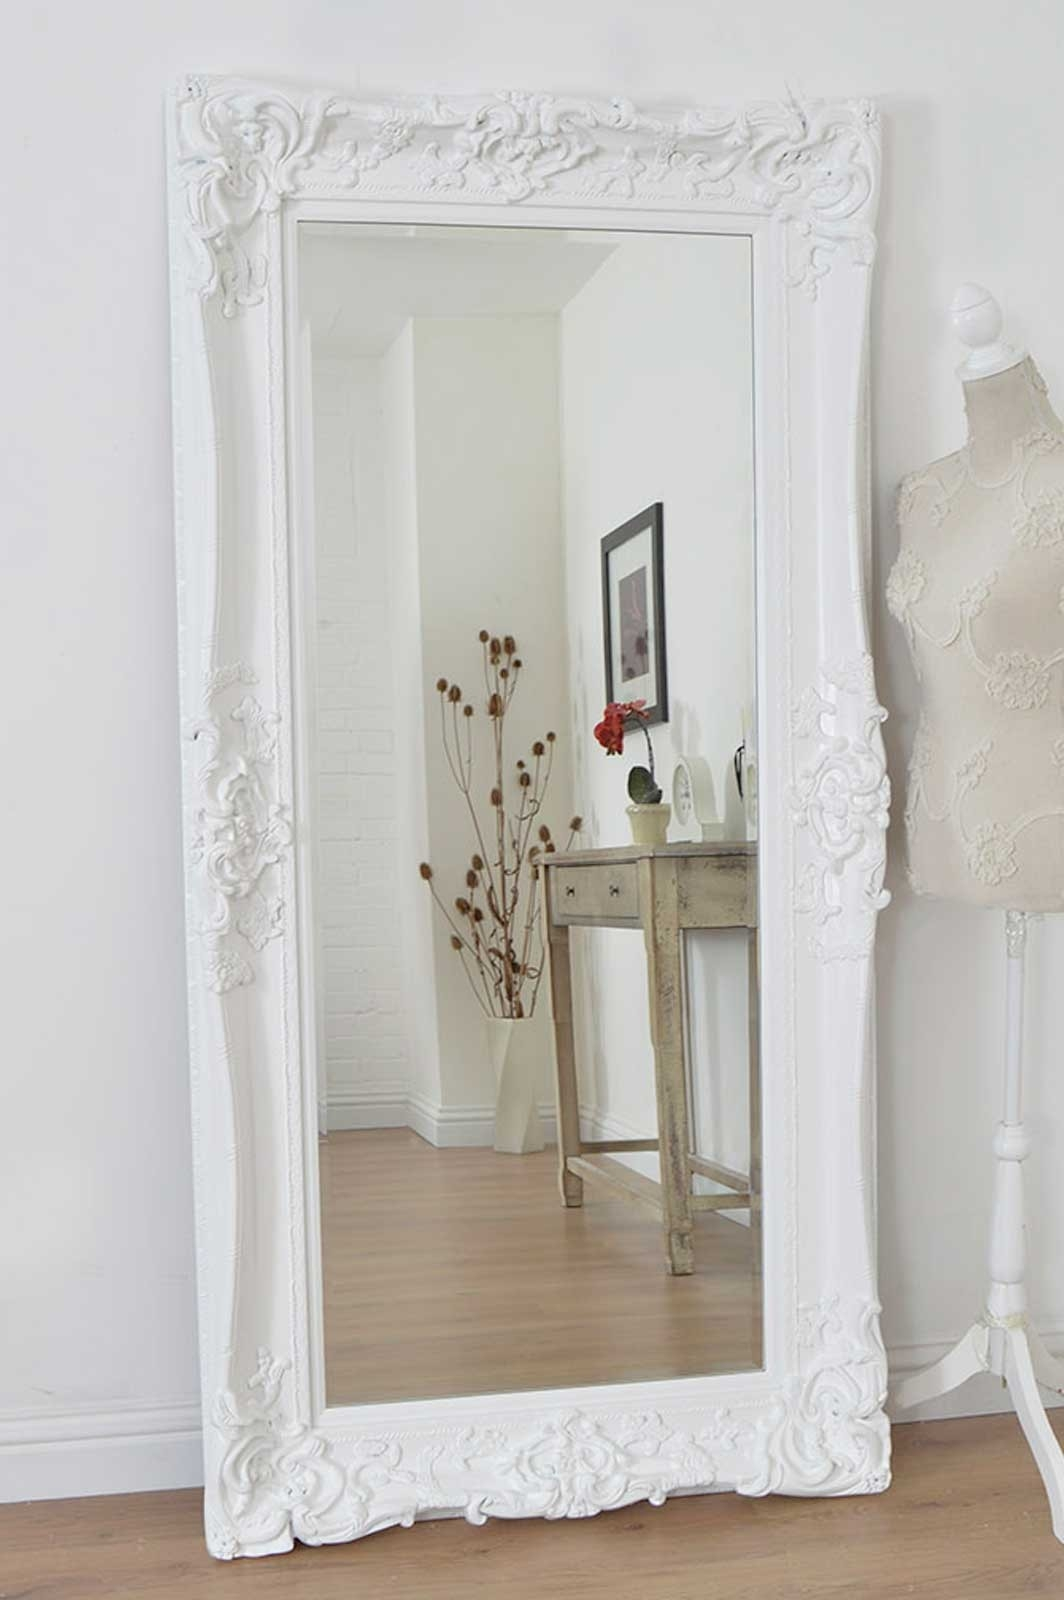 Big Wall Mirrors Beautiful Ideas Large Silver Wall Mirror Design Regarding Huge Ornate Mirror (Image 3 of 15)